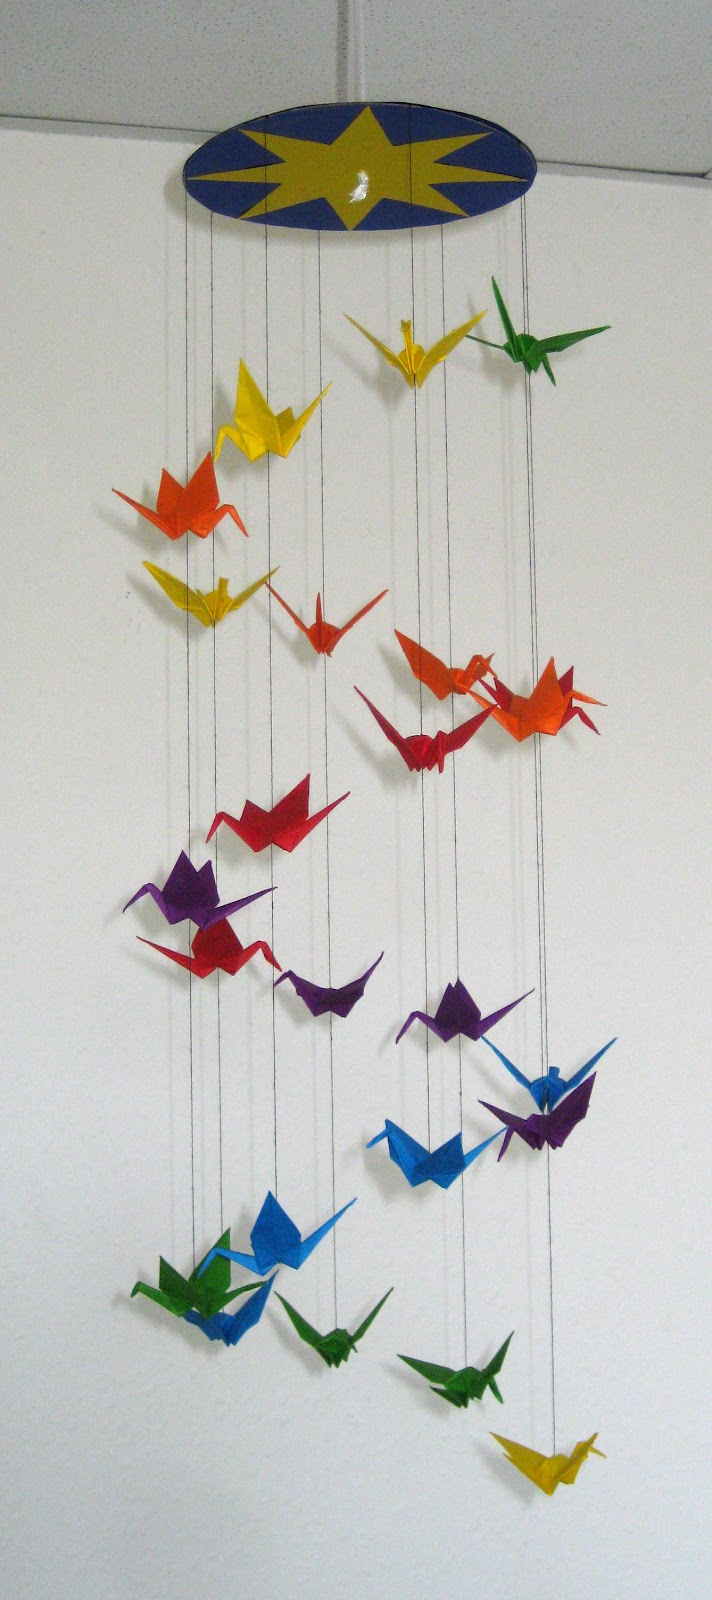 365 Days Of Stargazing 203 Paper Crane Mobile